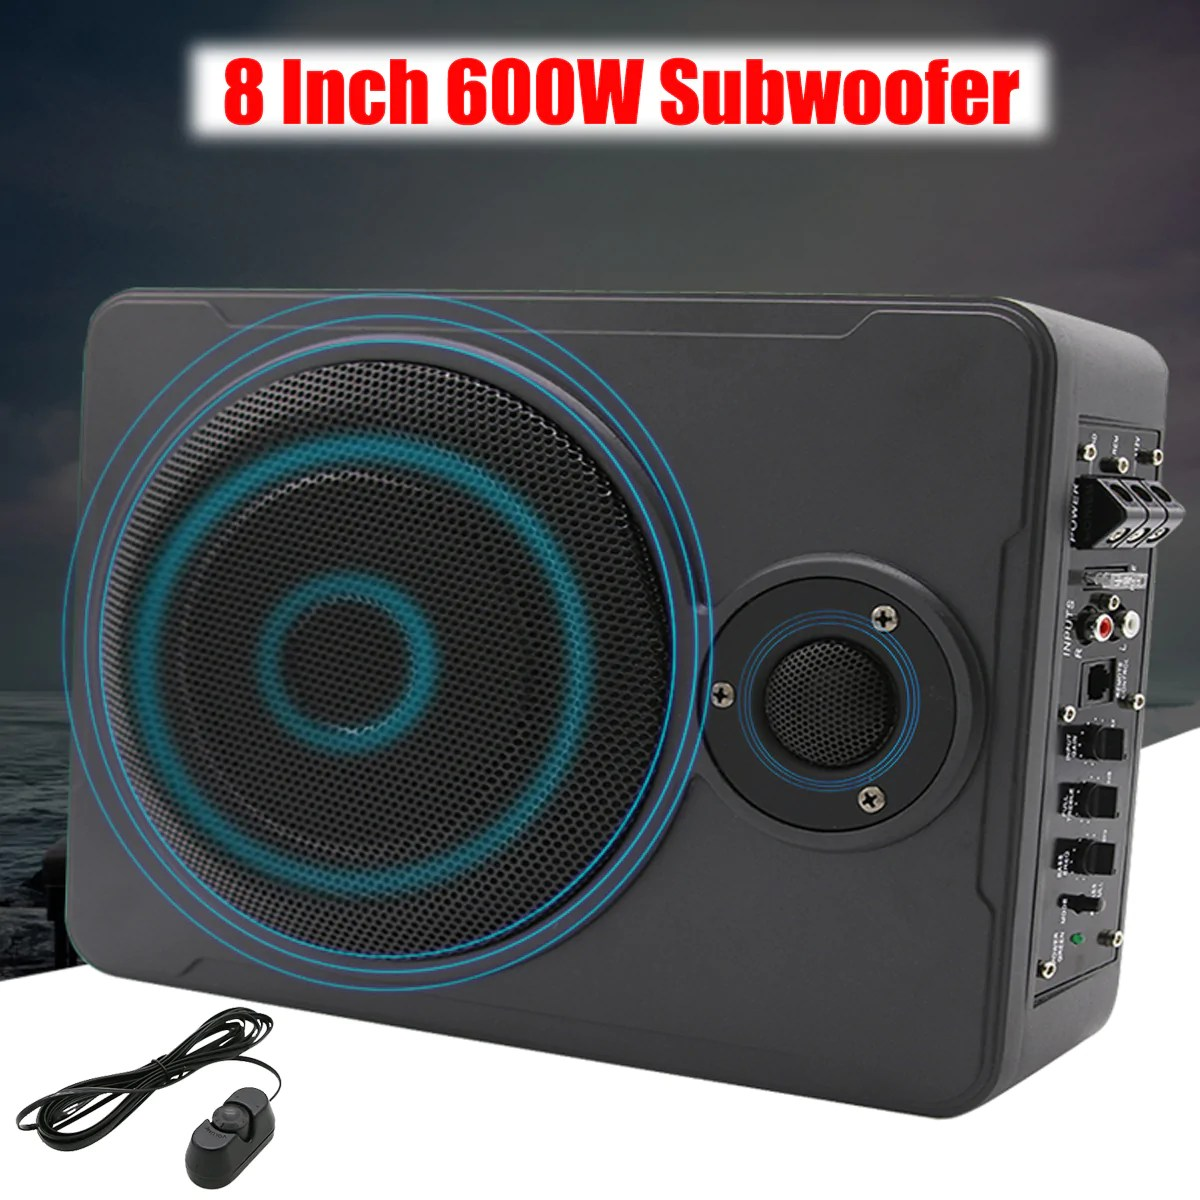 8 inch bluetooth car home subwoofer under seat sub 600w stereo subwoof budget friendly decor [ 1200 x 1200 Pixel ]